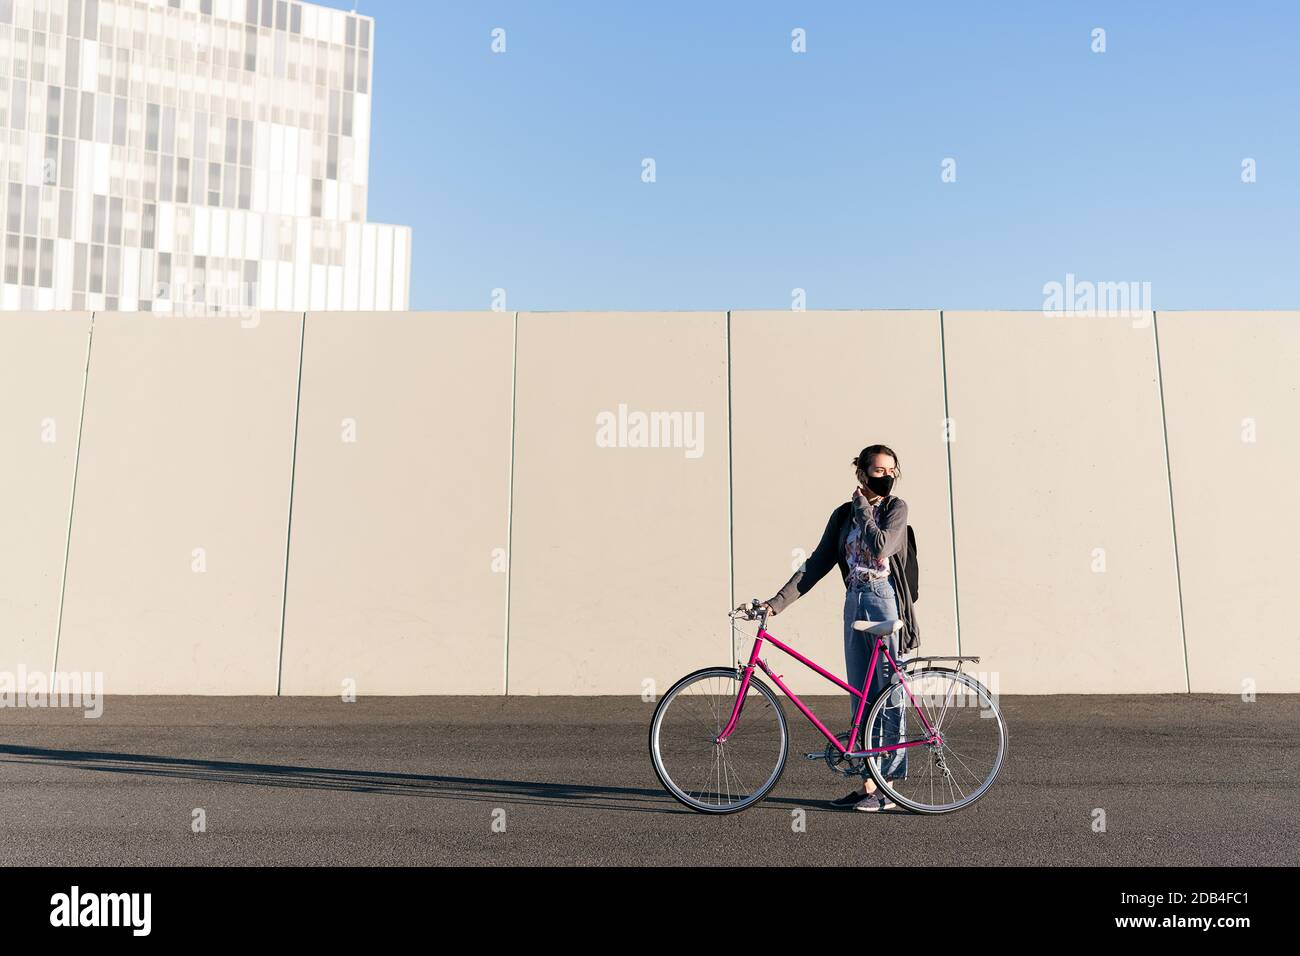 young girl with a pink retro bike at city adjusting her protective mask, concept of active lifestyle, protection against covid and sustainable urban m Stock Photo